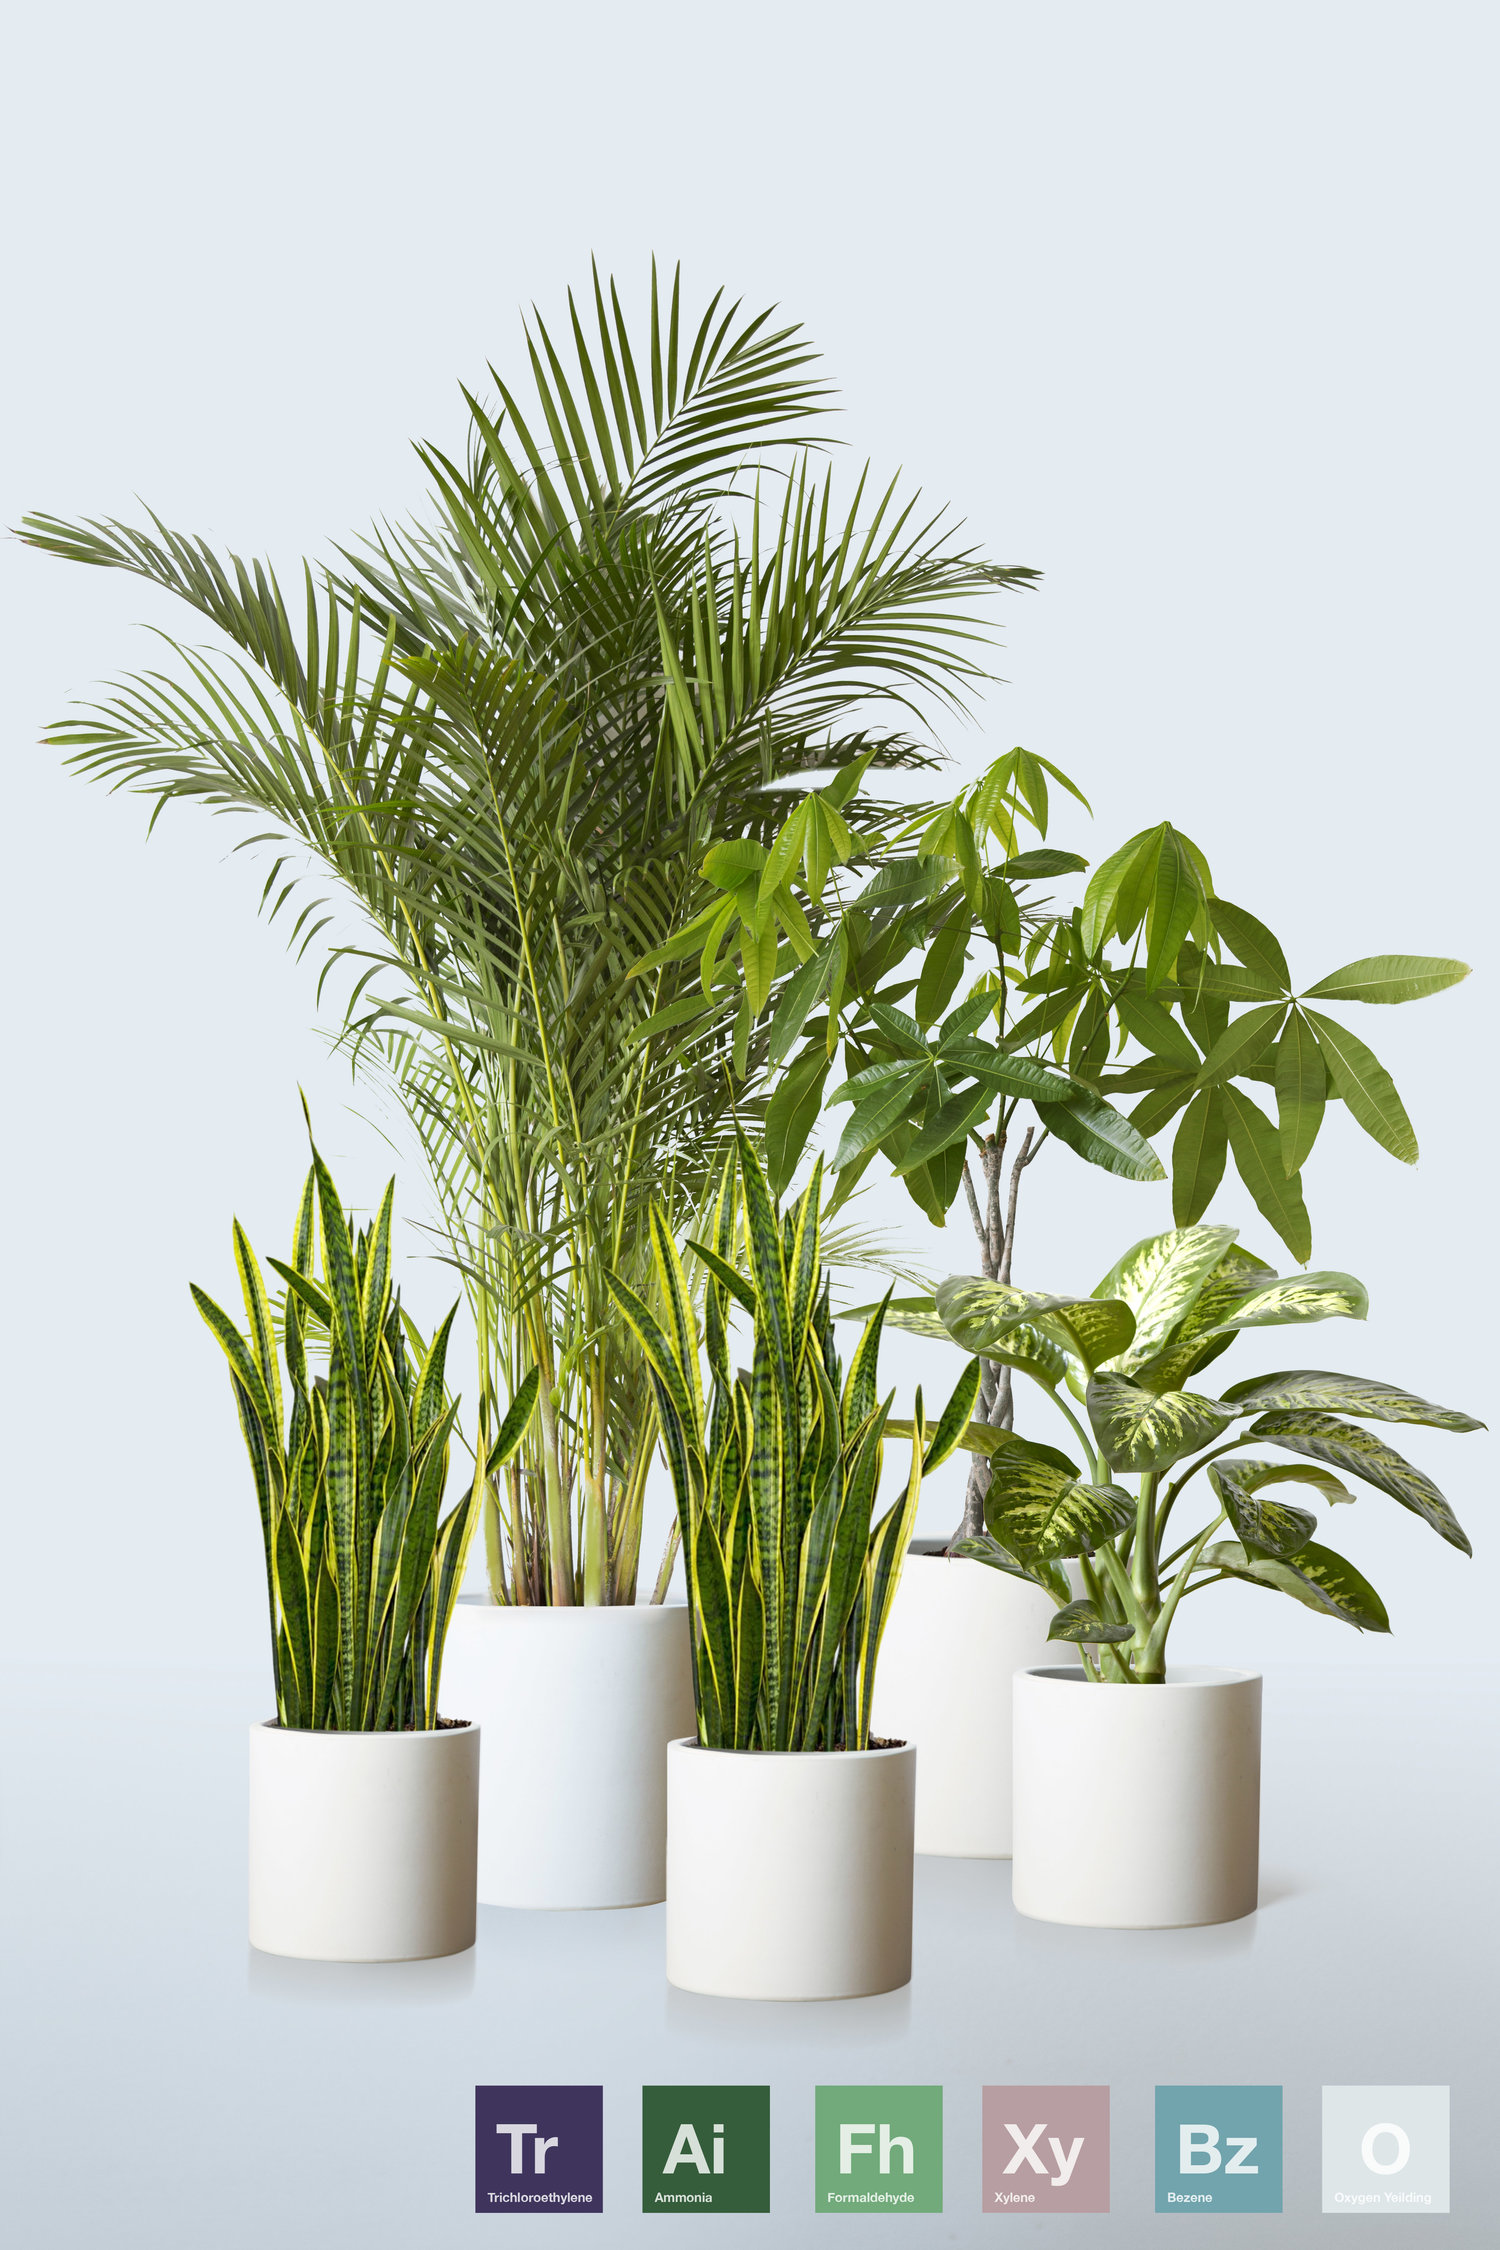 Sansevieria Plant Feng Shui the 1 bedroom kit save 14% — jack+ando